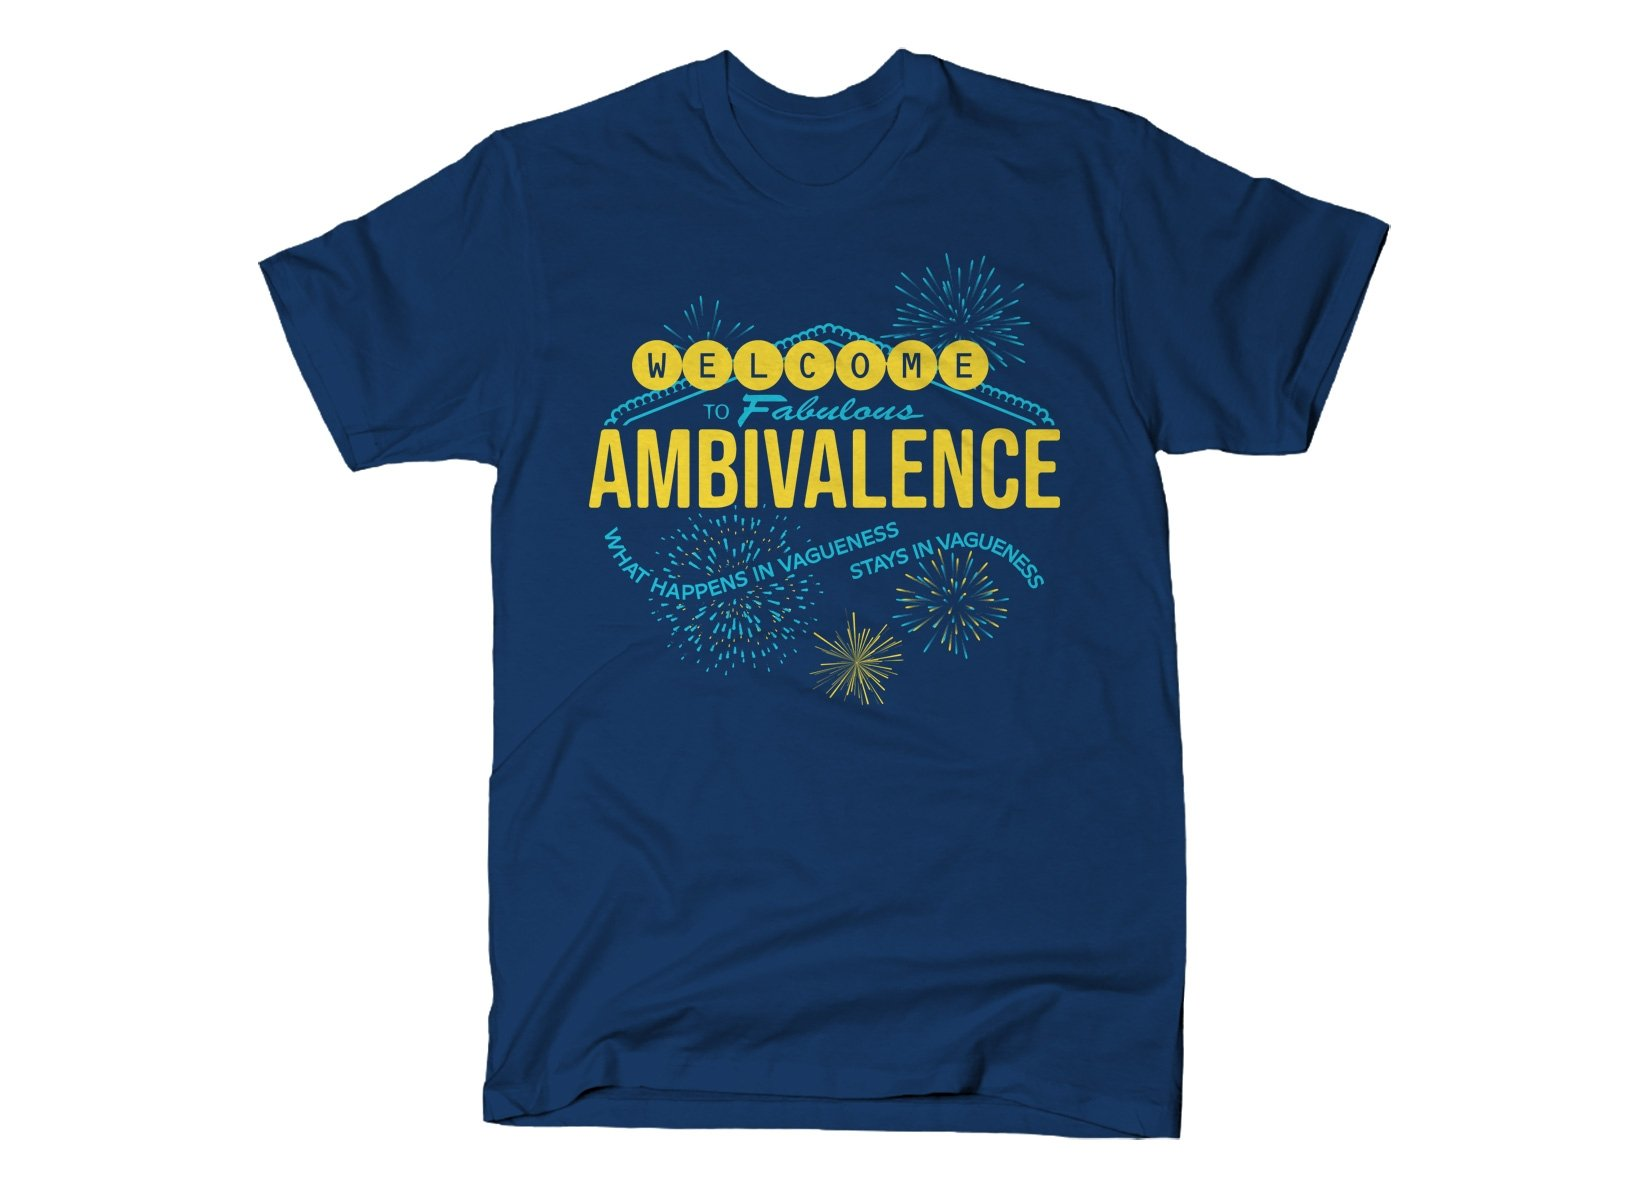 Welcome To Fabulous Ambivalence on Mens T-Shirt